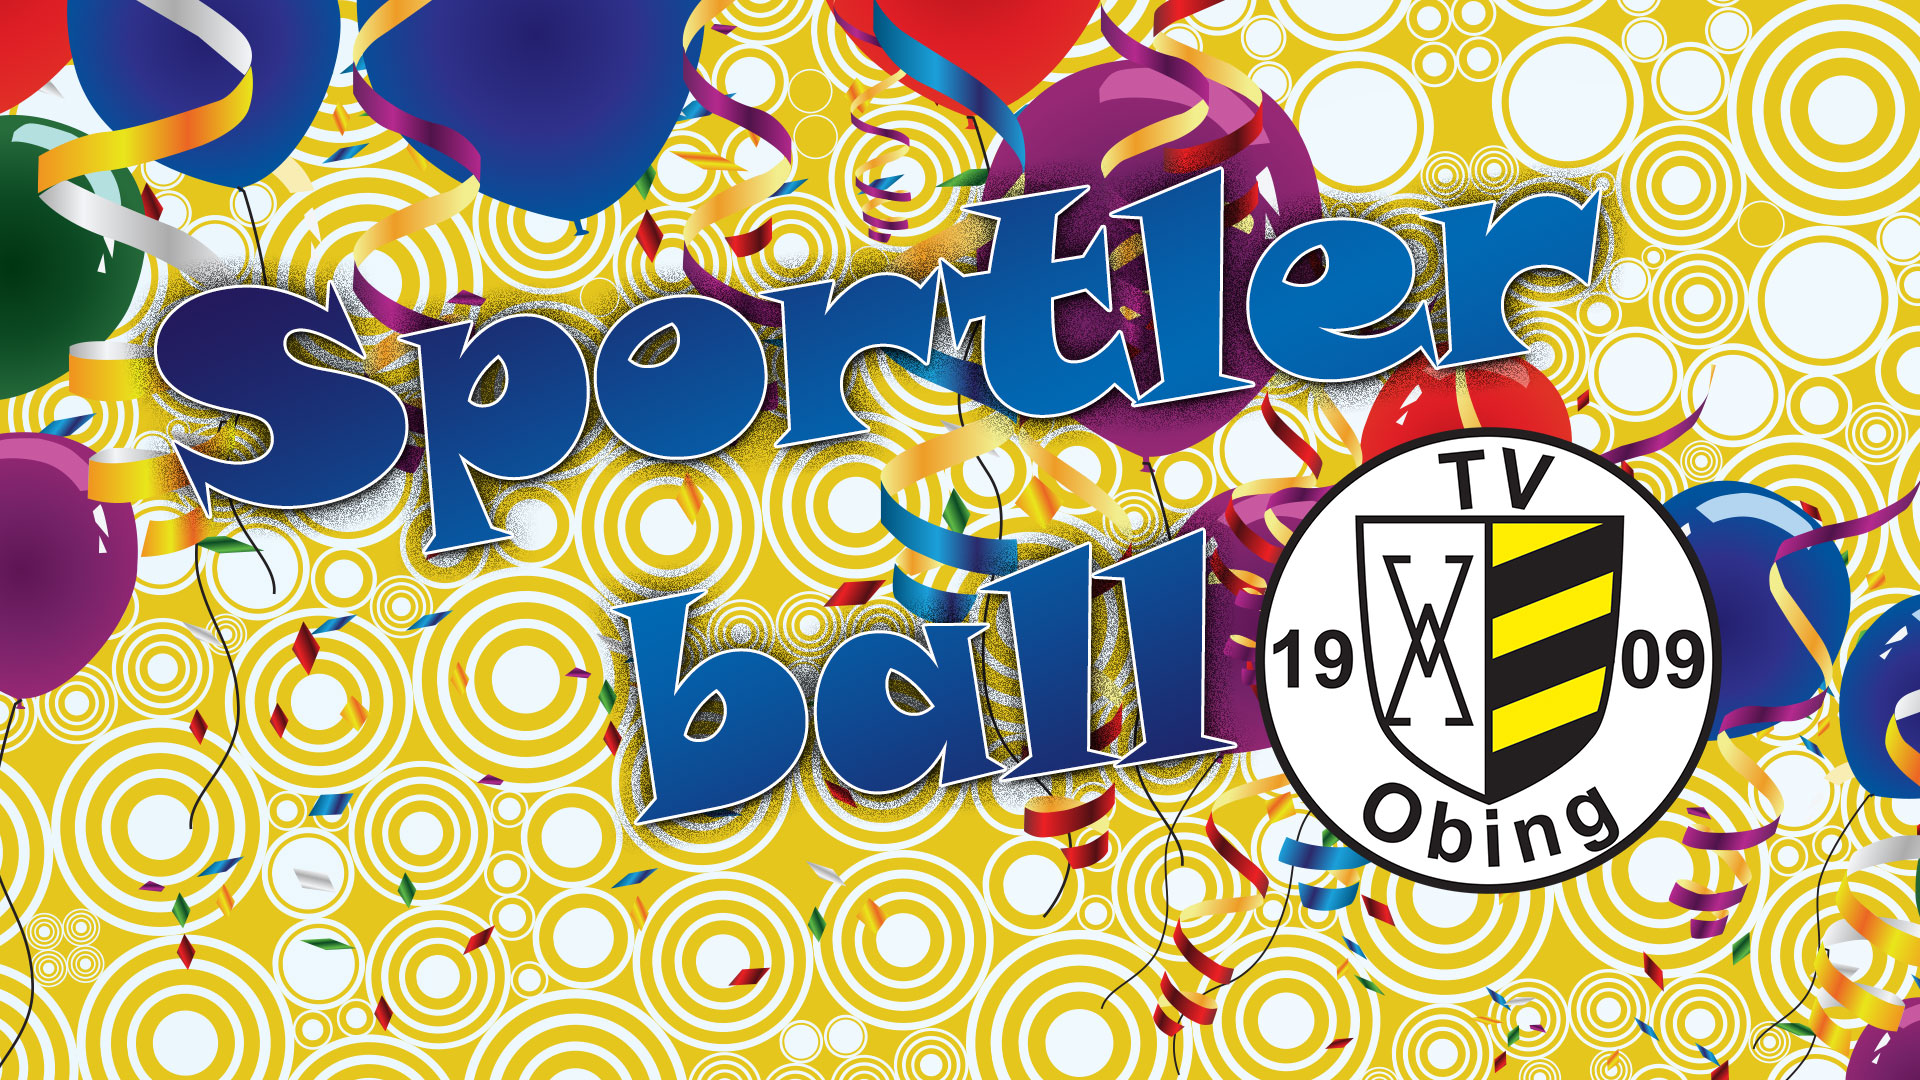 Sportlerball TV Obing